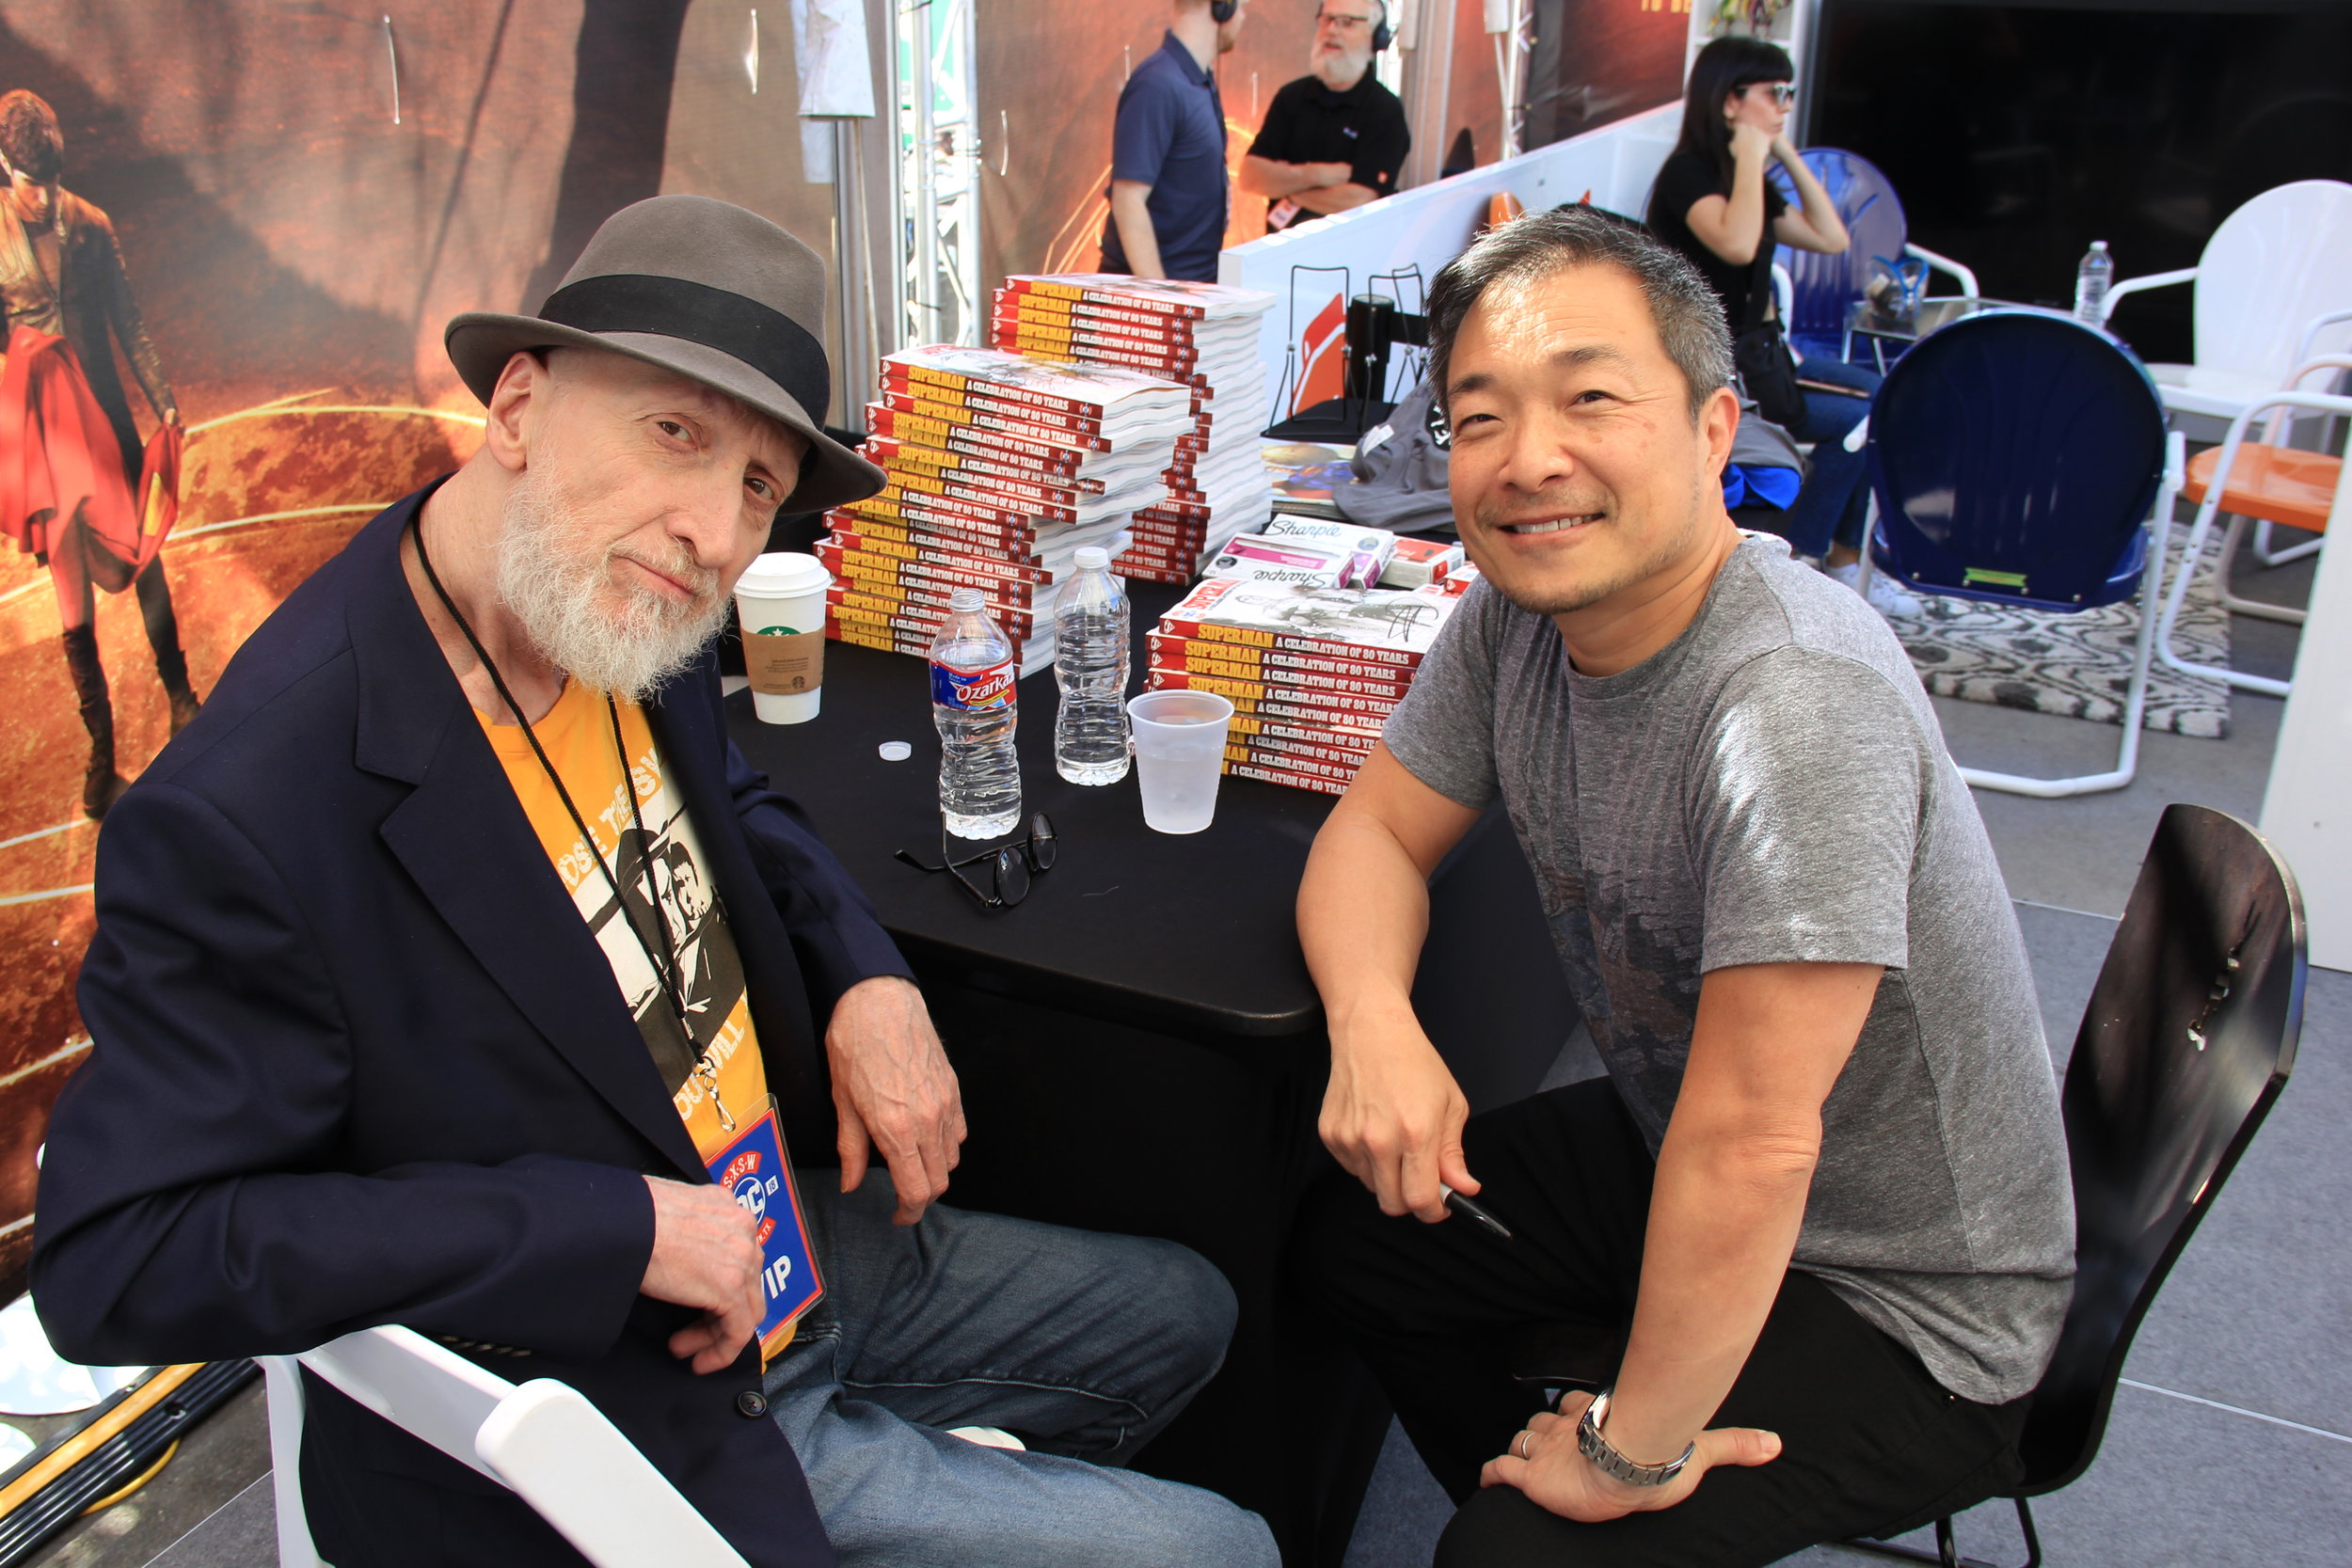 frank-miller-and-jim-lee-at-dcs-pop-up-shop---sxsw-2018_40048142194_o.jpg